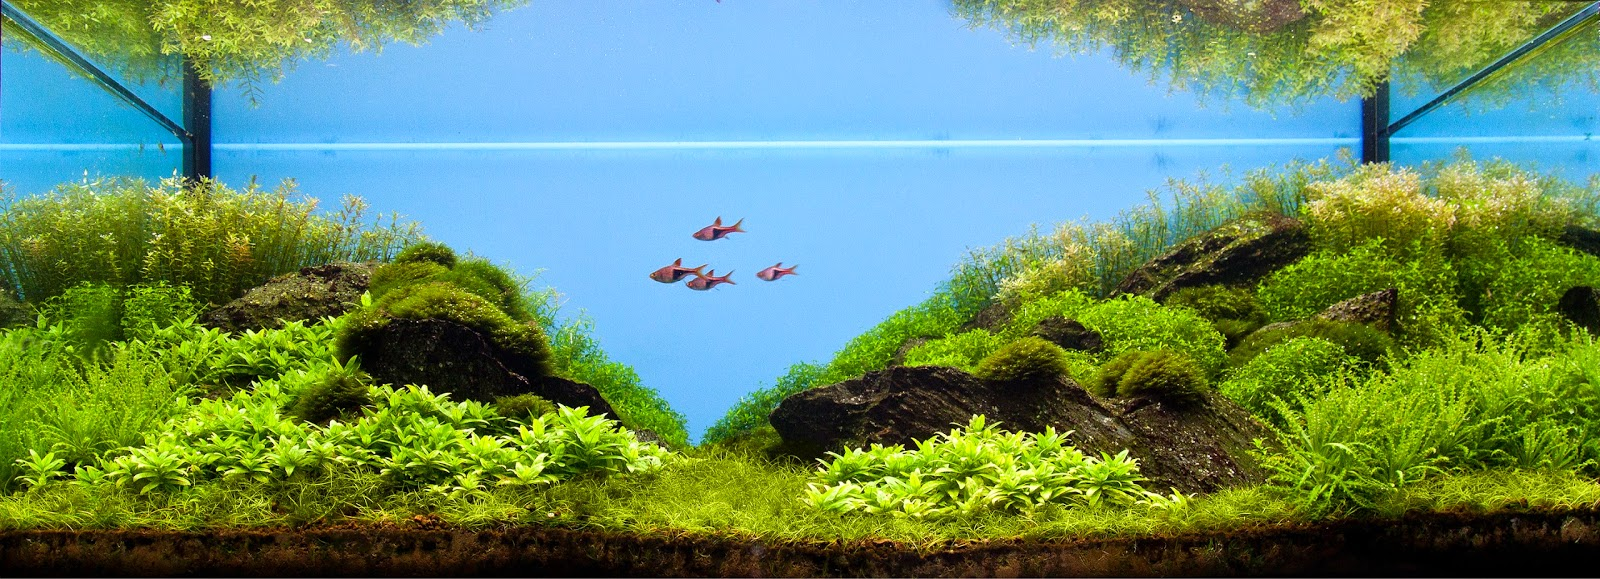 Aquascaping spain las termopilas by manuel ortiz mu oz - Aquascape espana ...